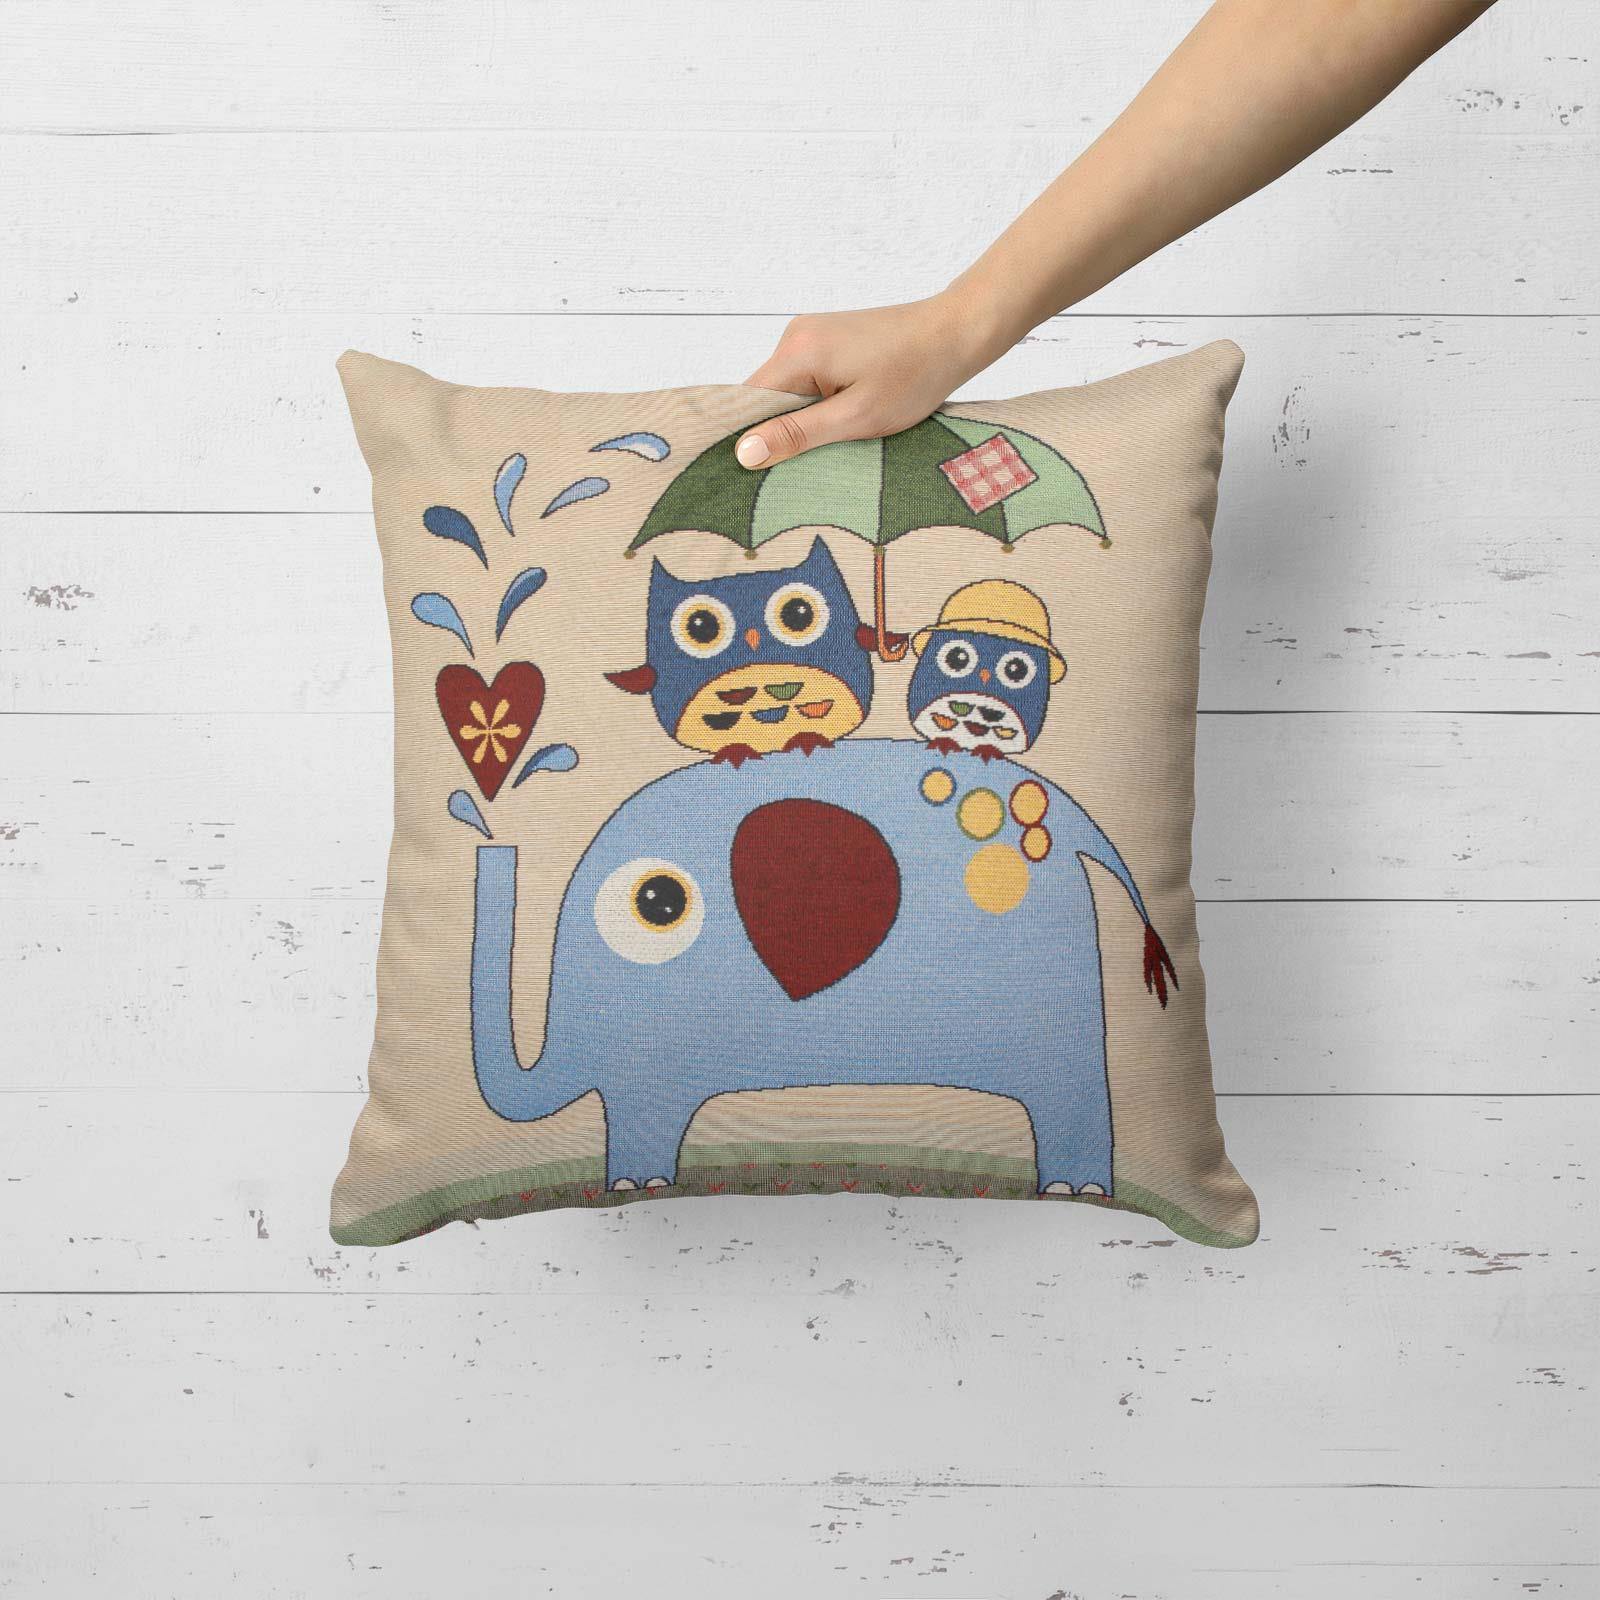 Tapestry-Cushion-Covers-Vintage-Pillow-Cover-Collection-18-034-45cm-Filled-Cushions thumbnail 50